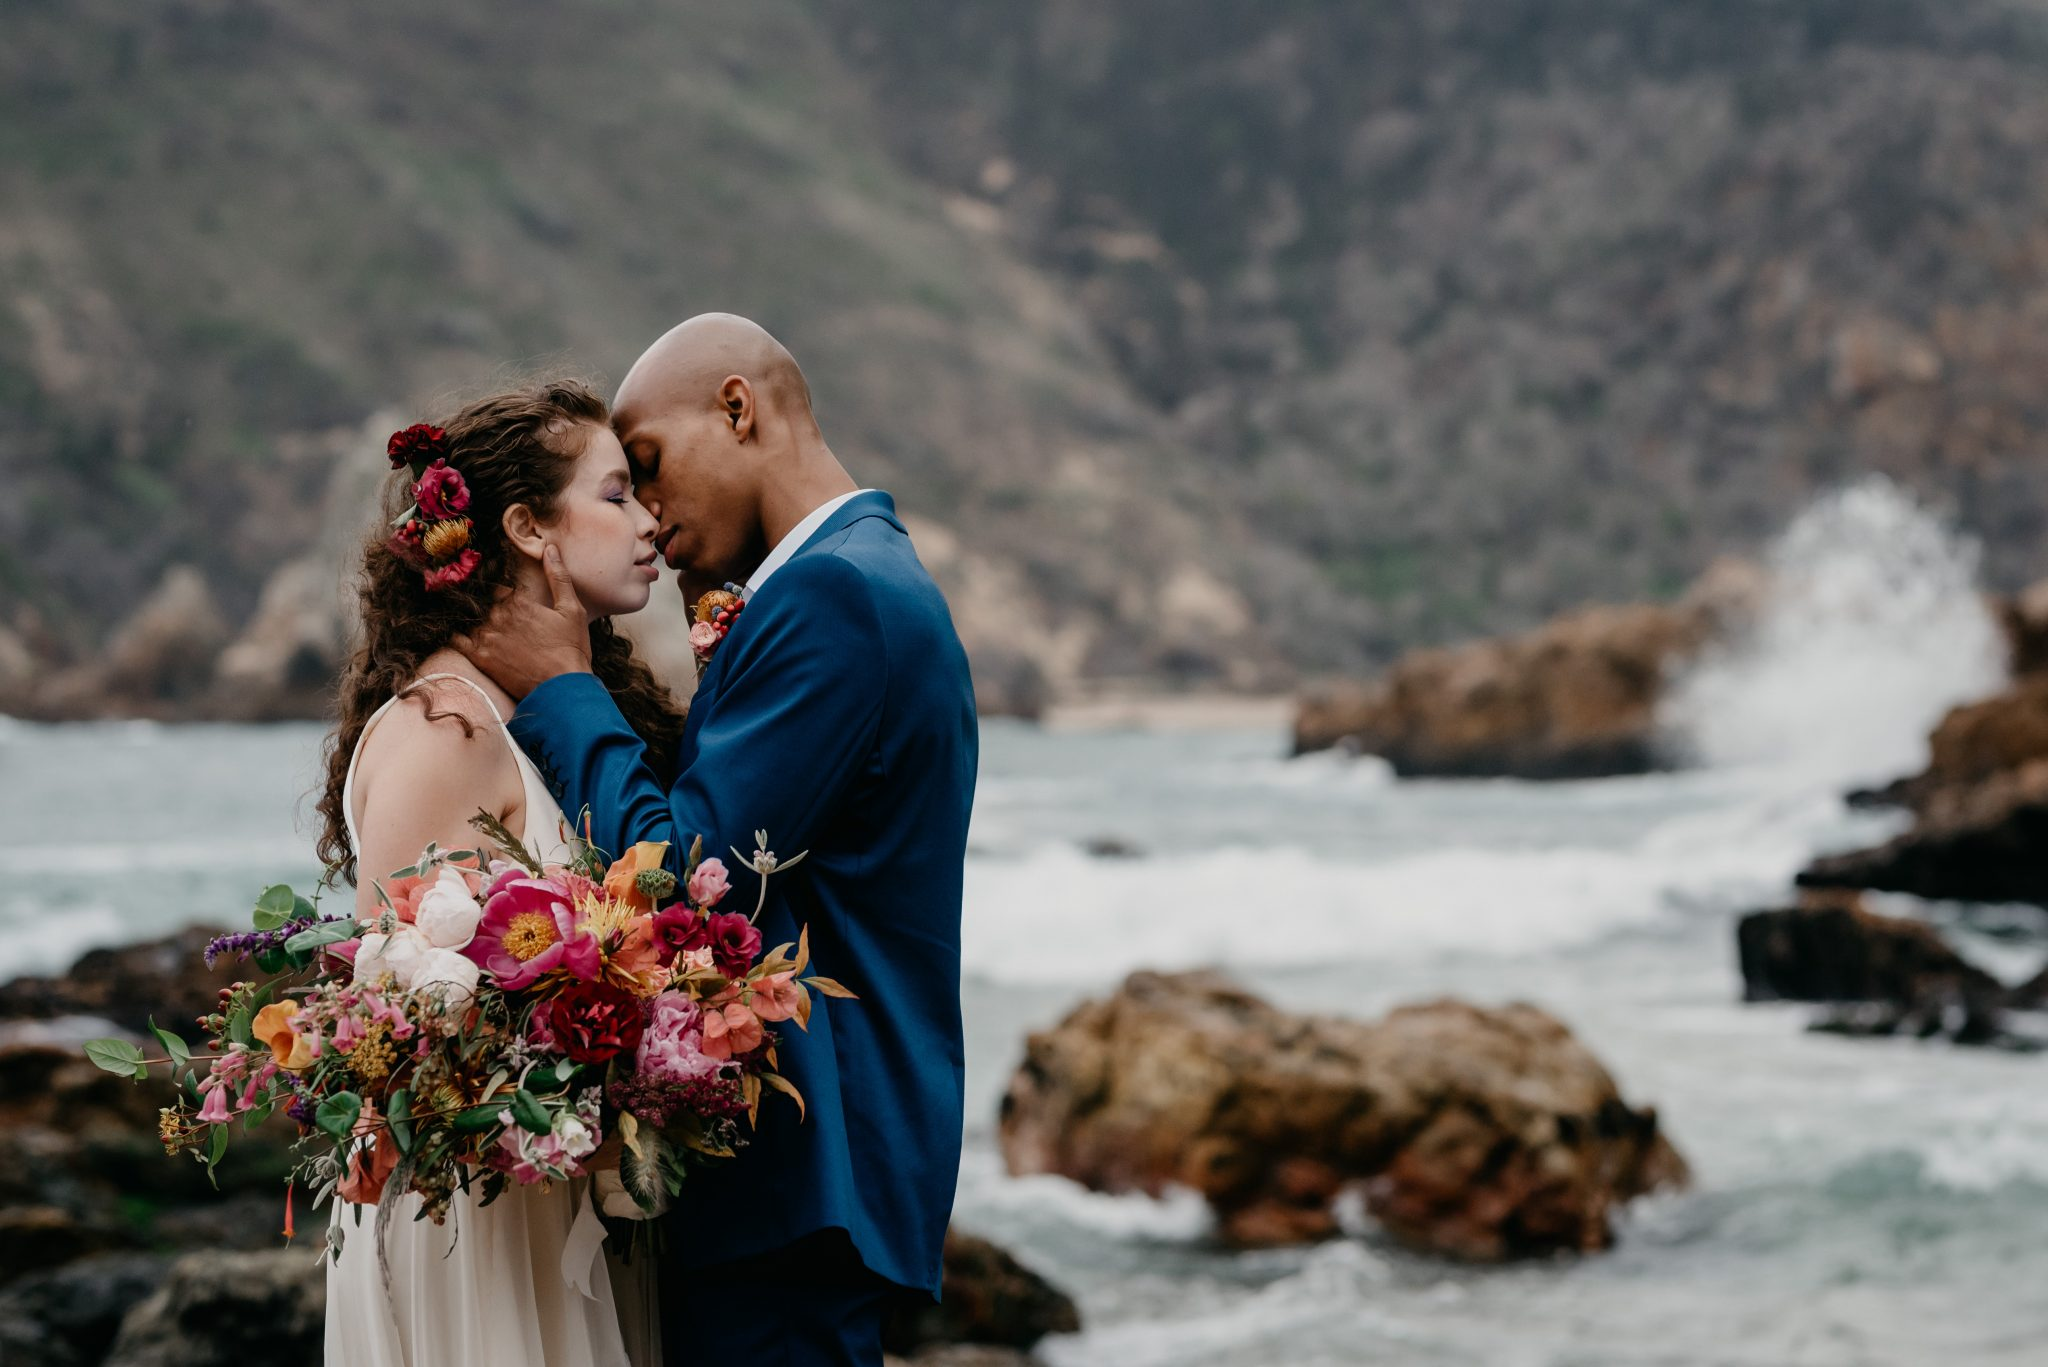 Joni & Adriaan's wedding at the Knysna Heads